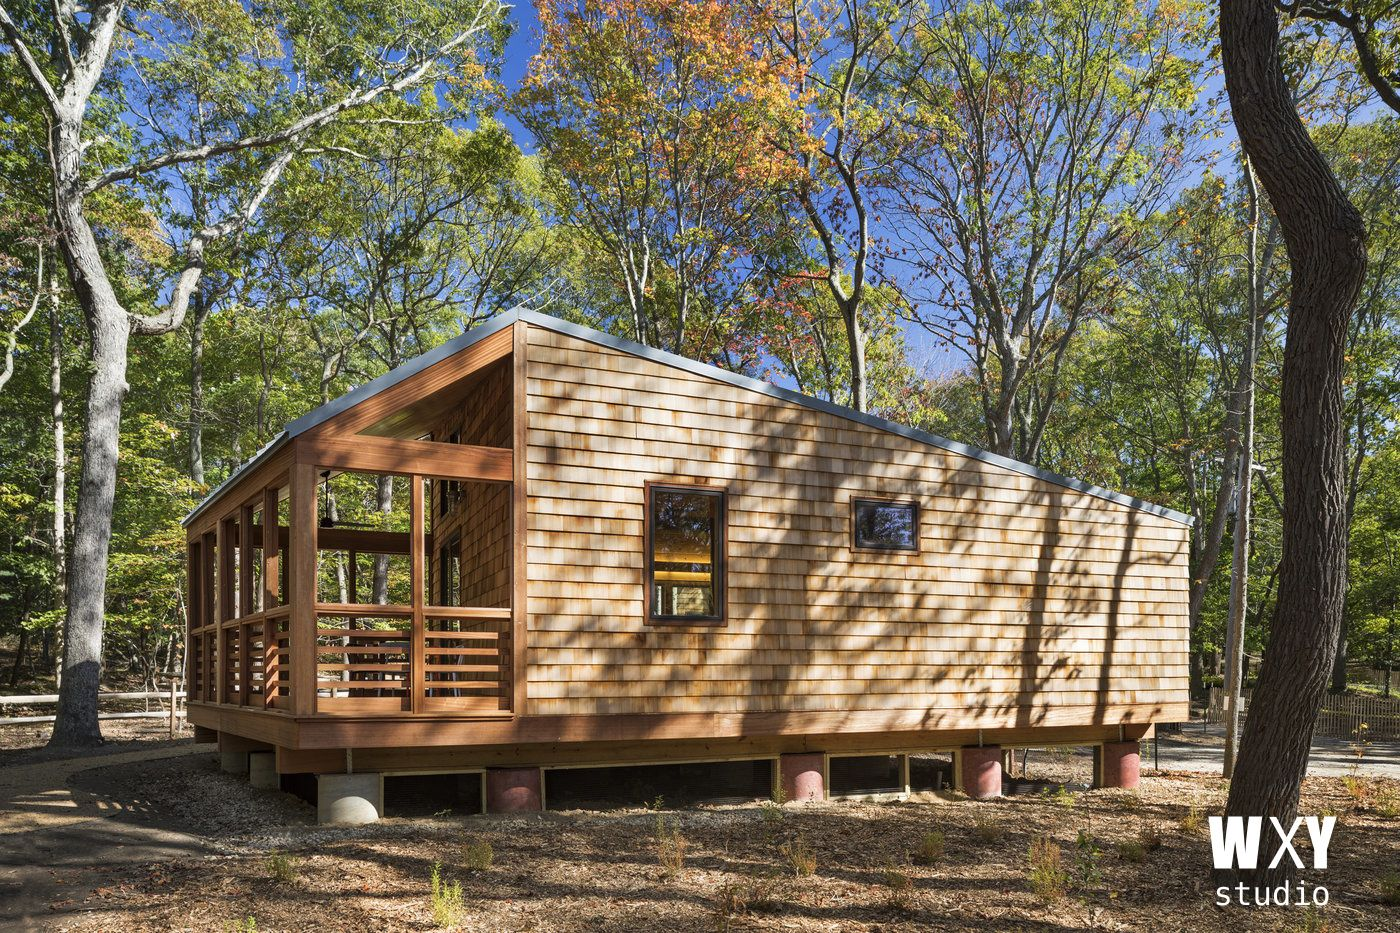 A Beautiful Modern Cabin That Will Be Available For Booking Less Than Two Hours From NYC At The Wildwood State Park On Long Island